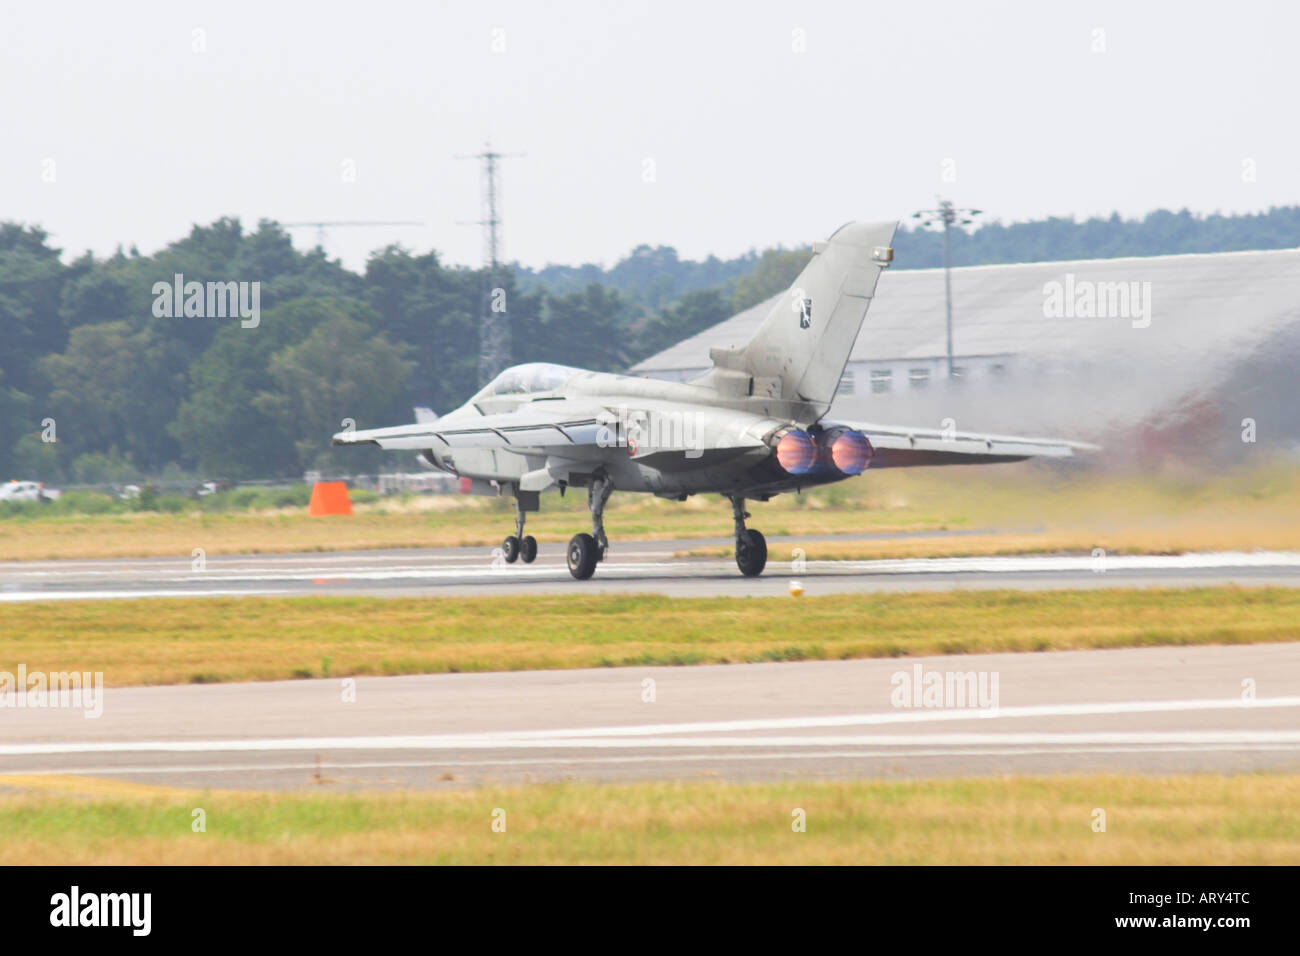 Tornado G4 just getting airborne on full reheat - Stock Image